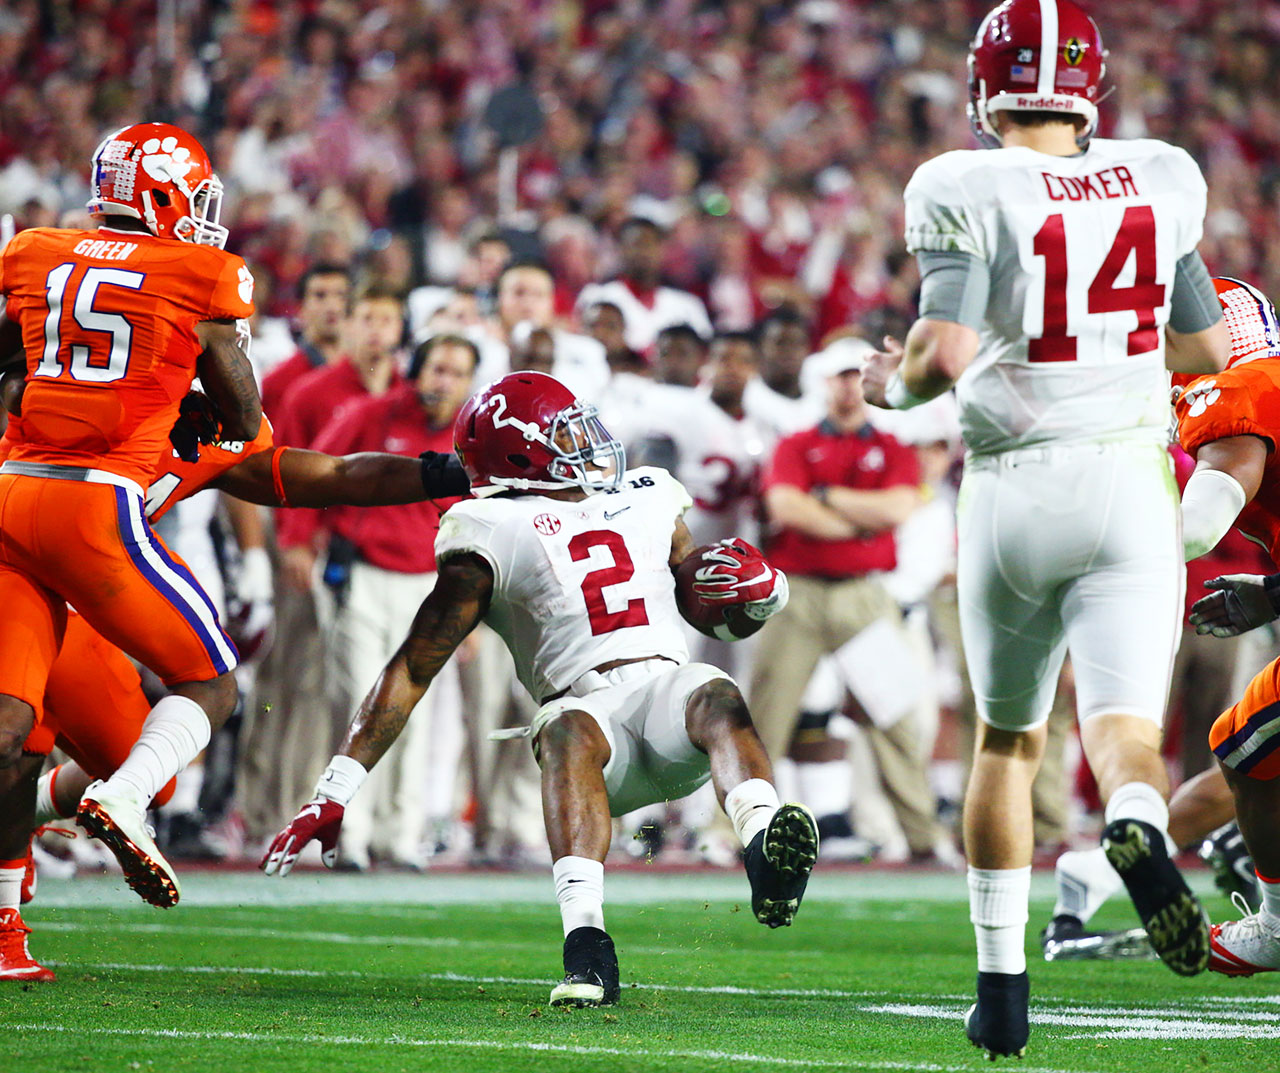 Derrick Henry gets pulled down from behind by a Clemson defender.